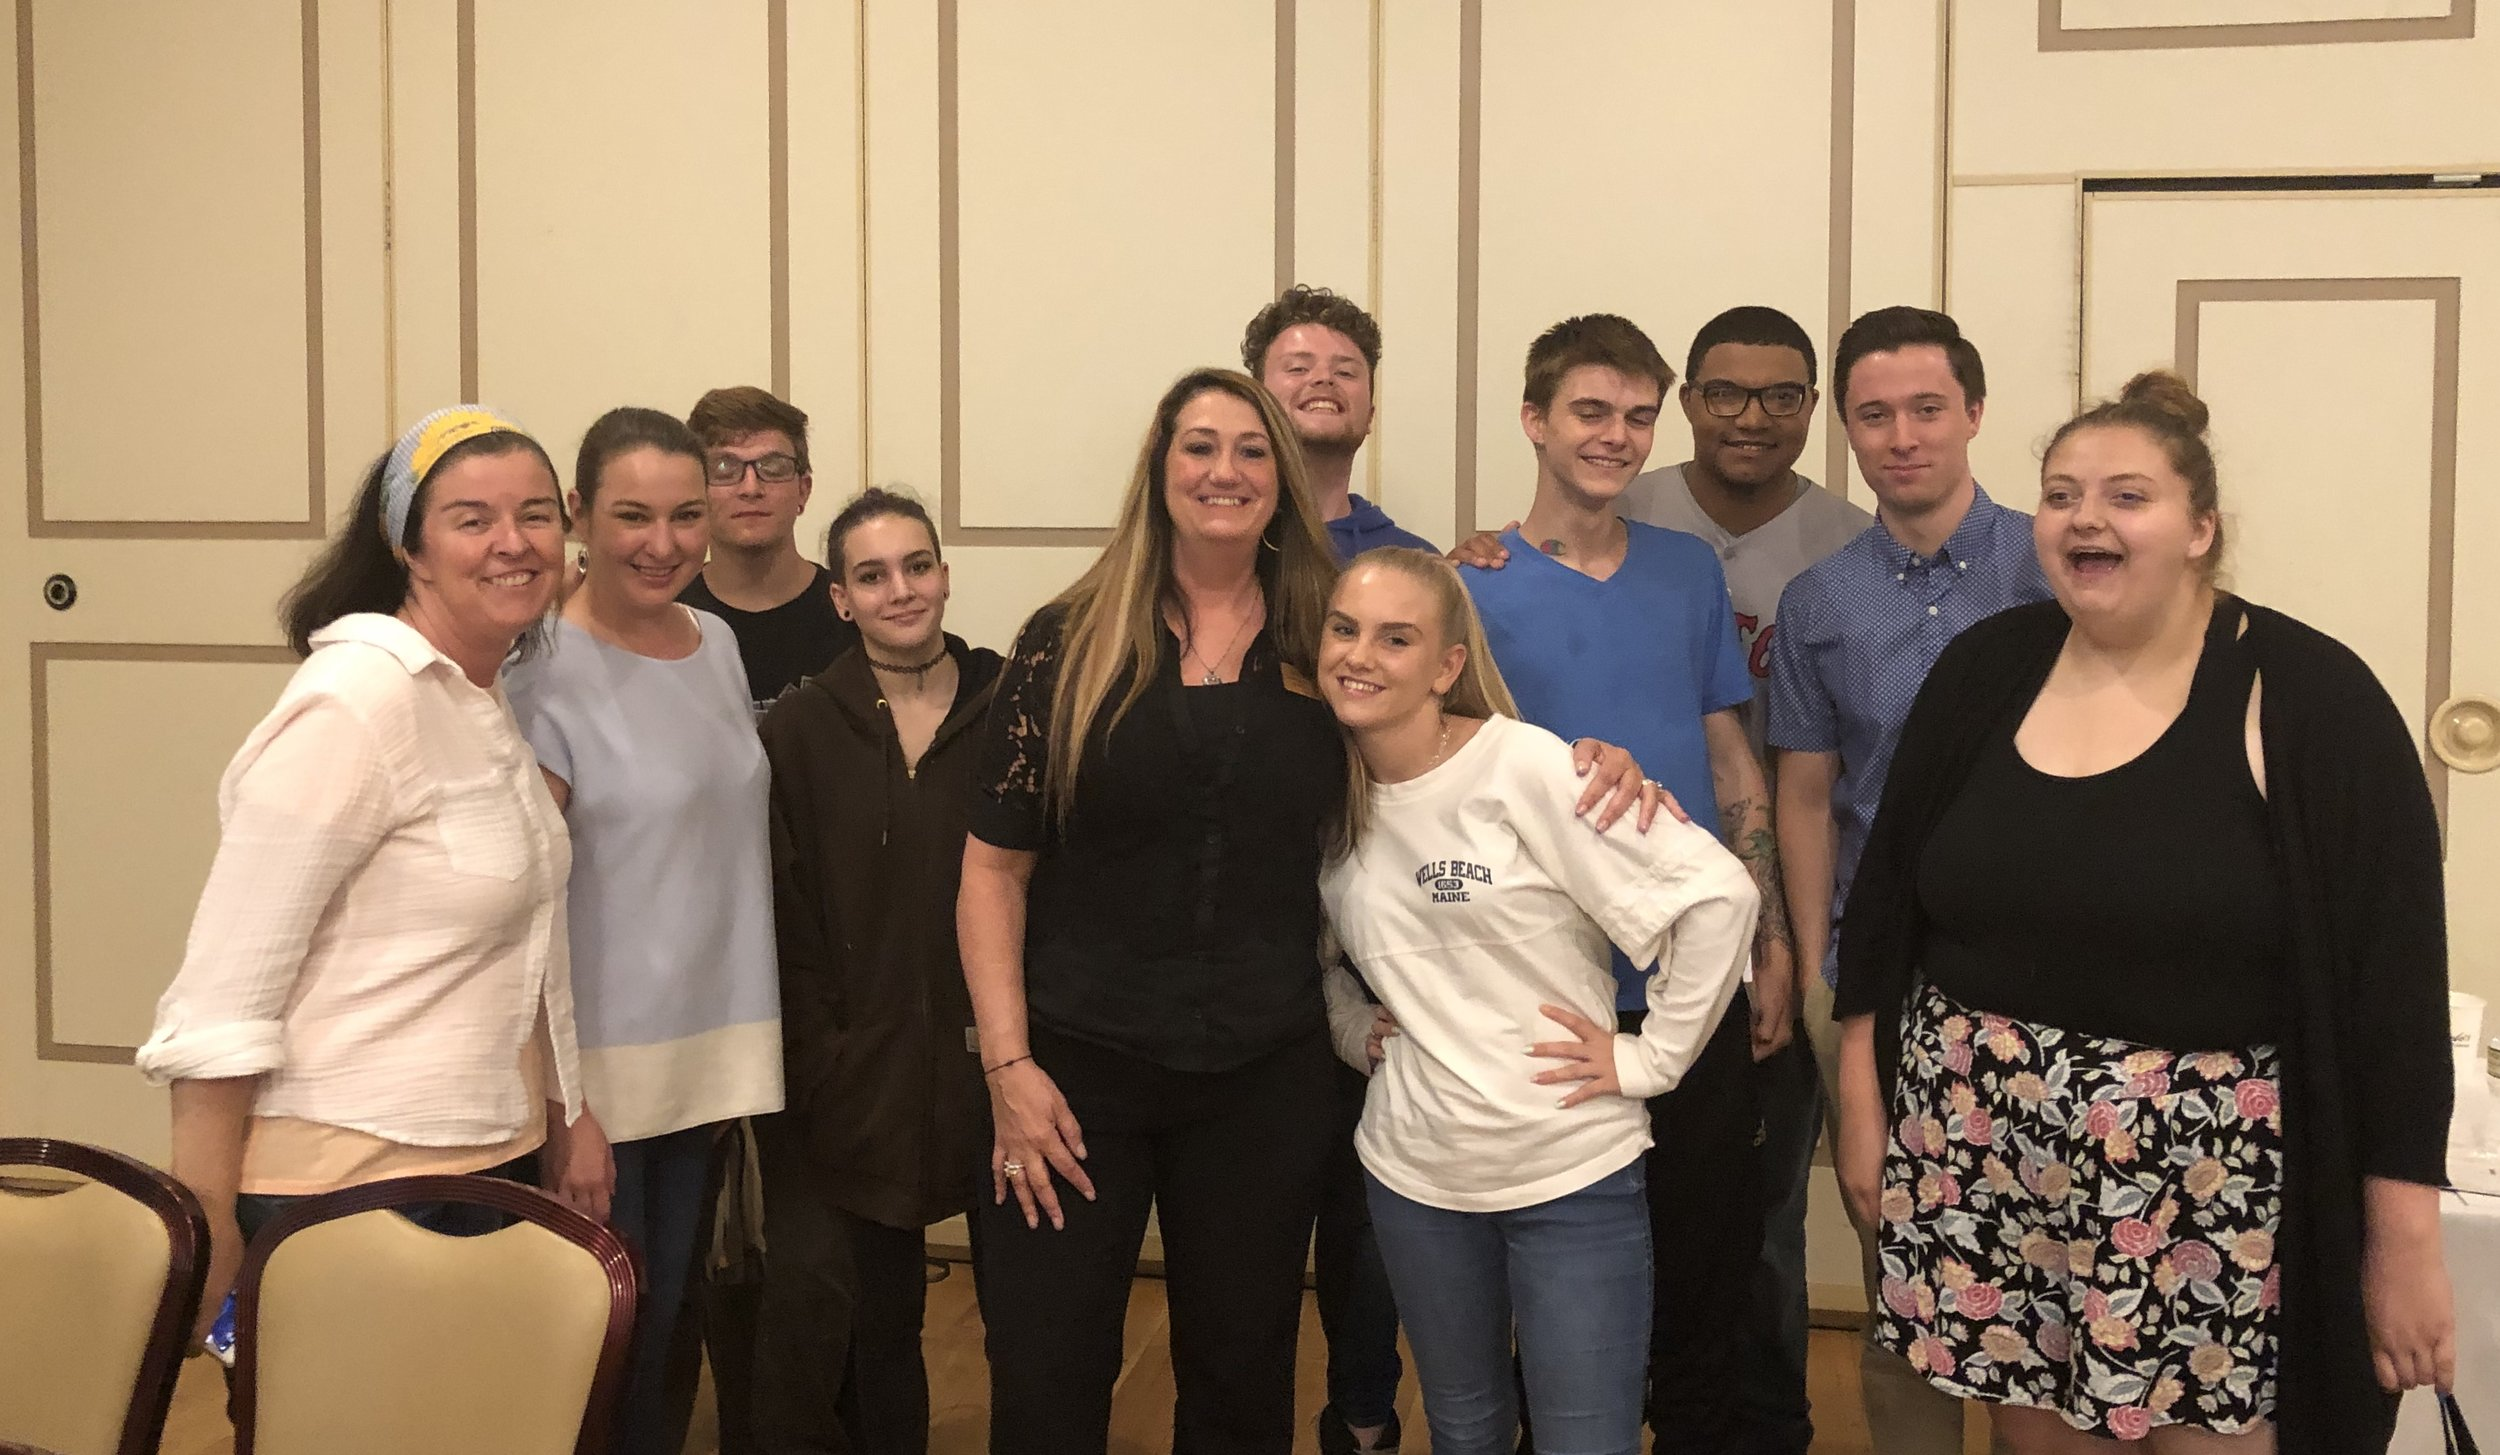 """Cast of """"The Price You Pay: Second Chances"""" and """"The Price You Pay"""" with MNA Chair Charlene Richardson on 6/11/19. Performance for MDA Annual Conference at Lombardo's, Randolph"""